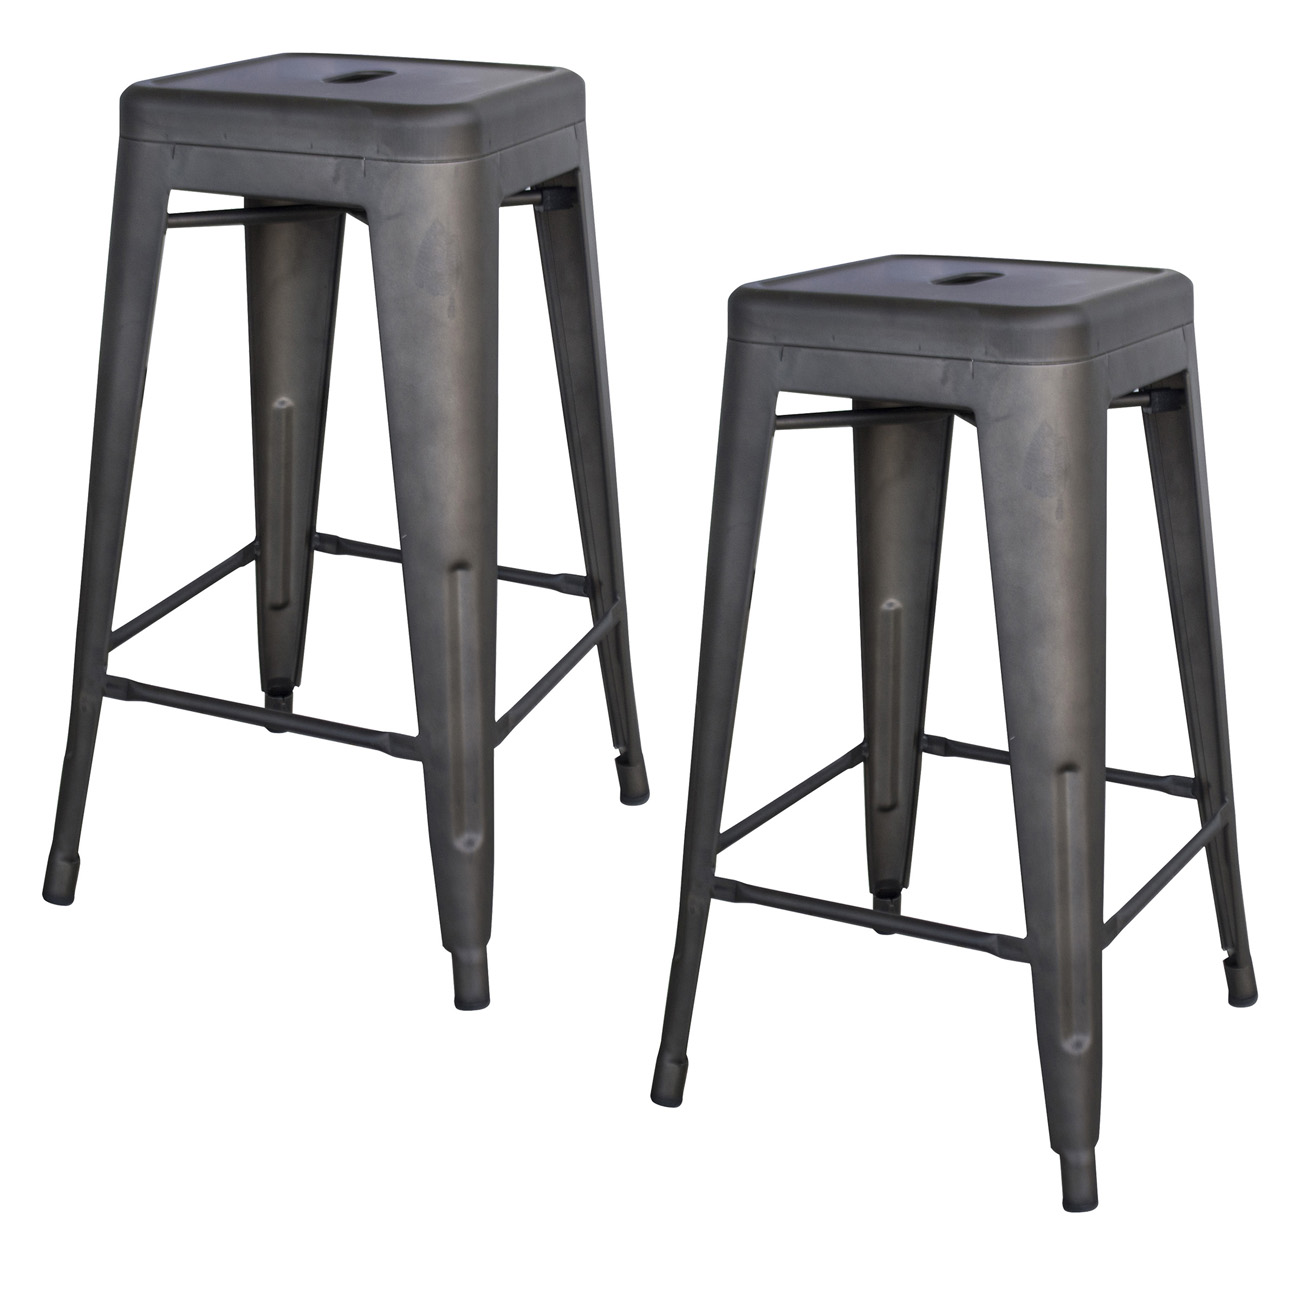 Rustic Gunmetal 24 in. Metal Bar Stool - 2 Piece